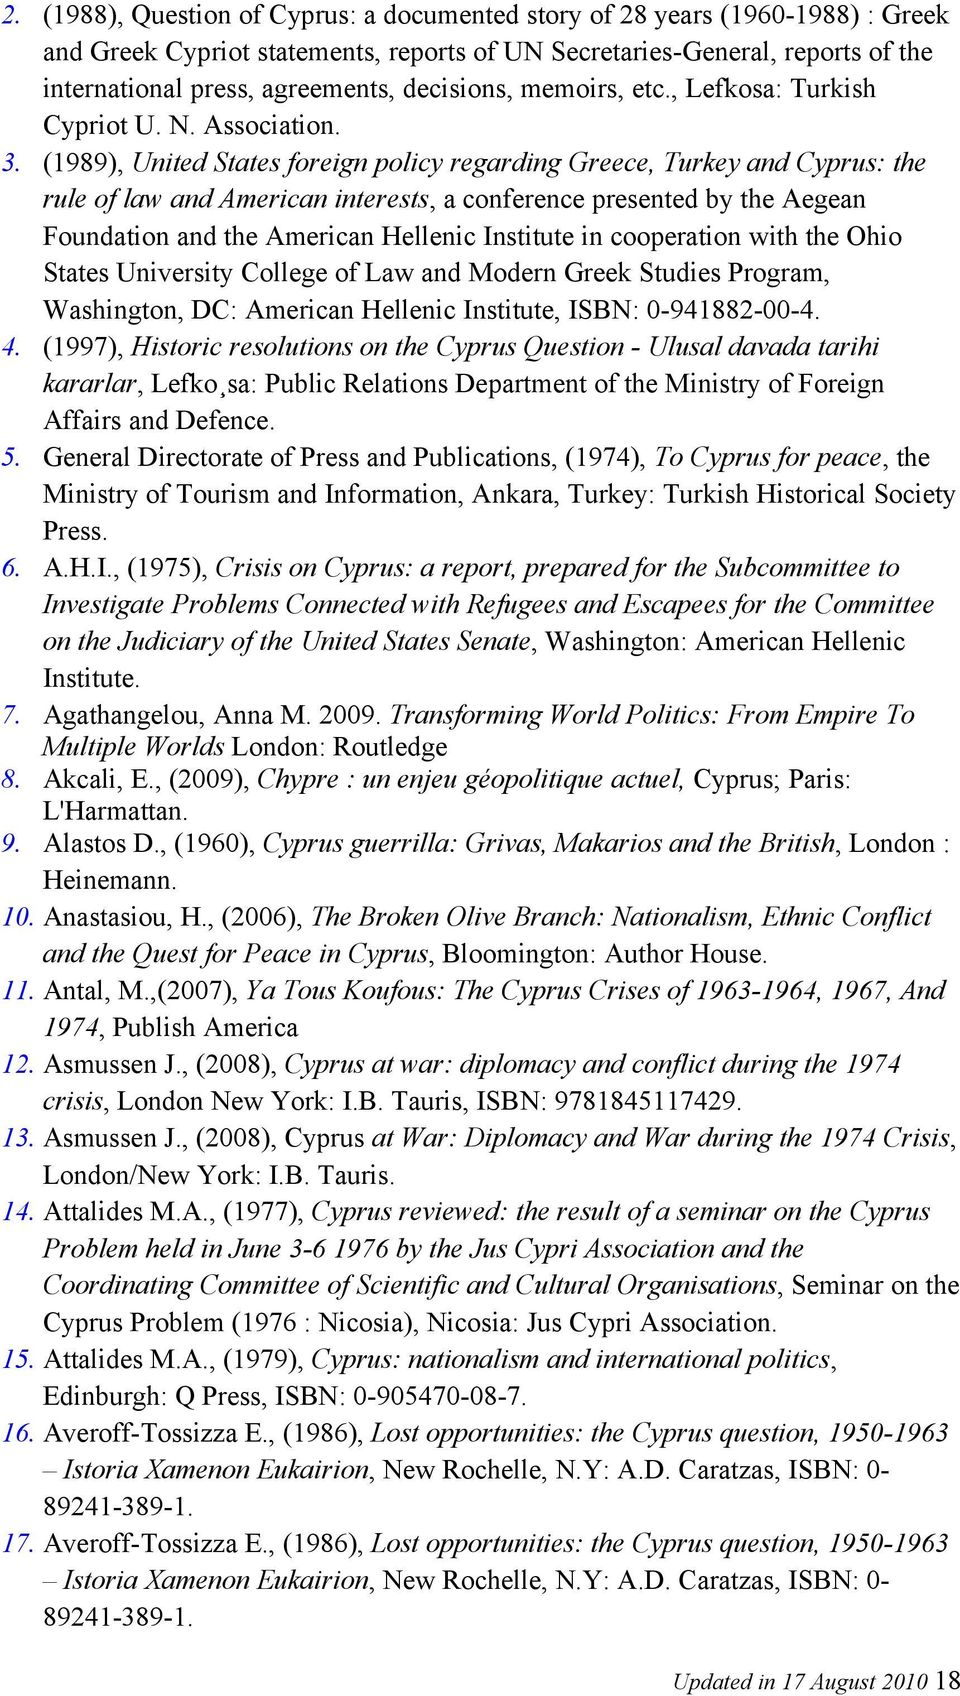 (1989), United States foreign policy regarding Greece, Turkey and Cyprus: the rule of law and American interests, a conference presented by the Aegean Foundation and the American Hellenic Institute